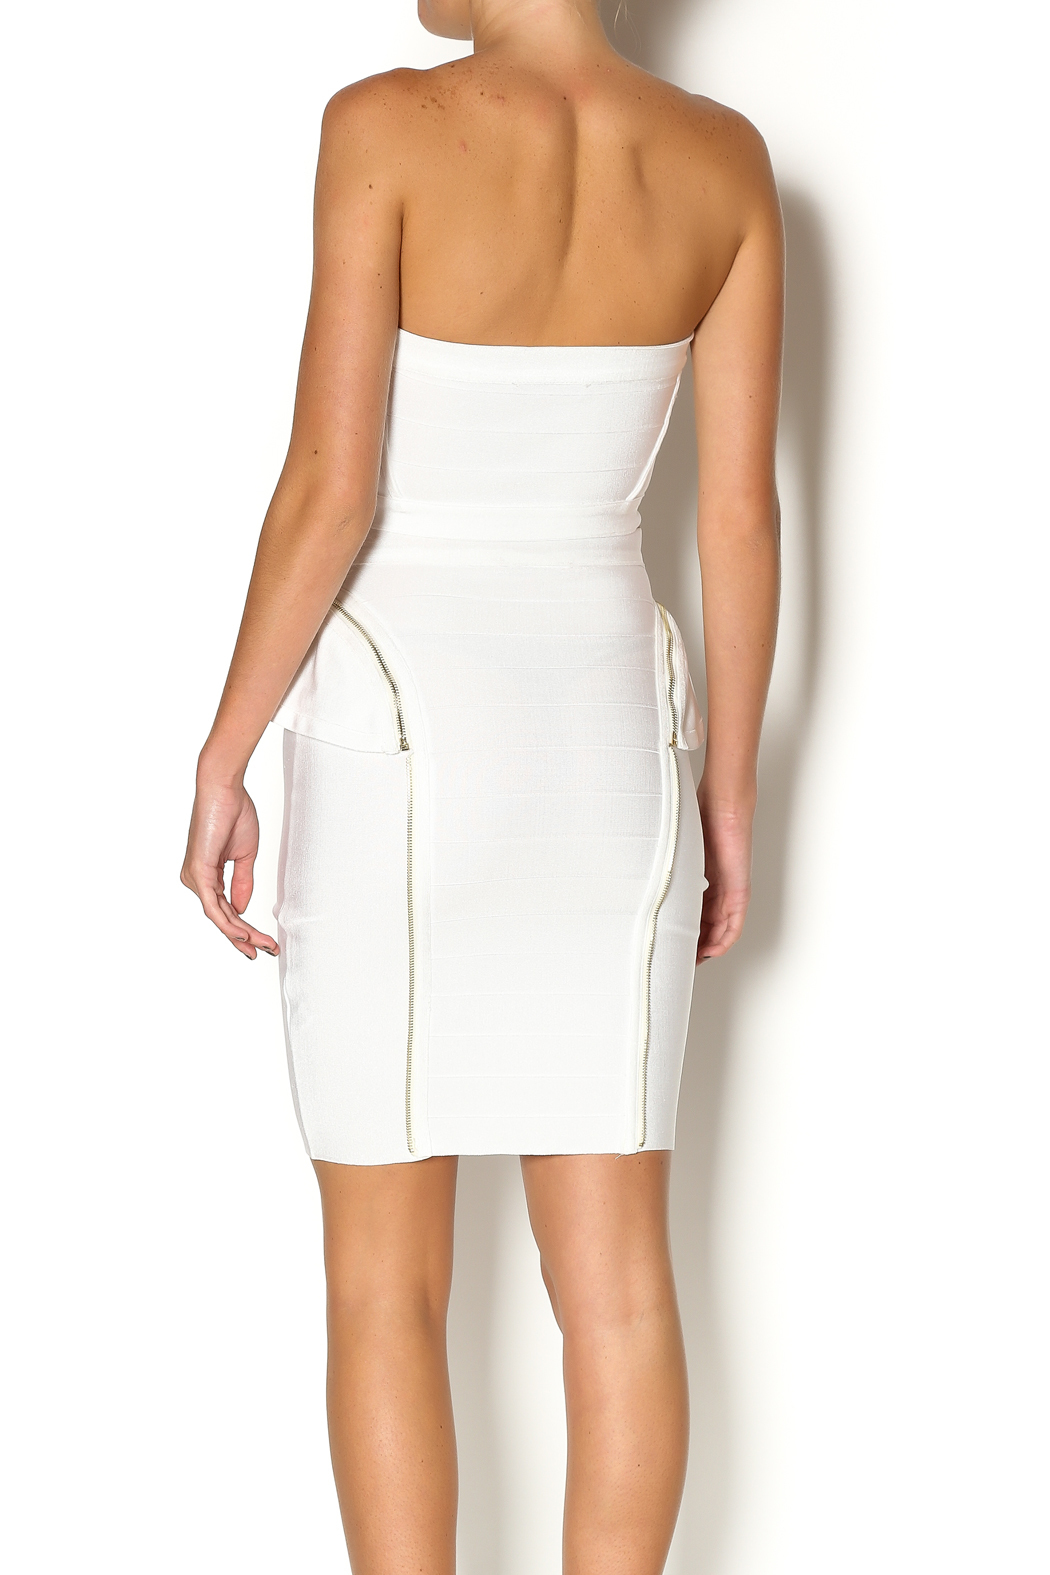 Wow Couture Two Piece Bandage Set - Back Cropped Image